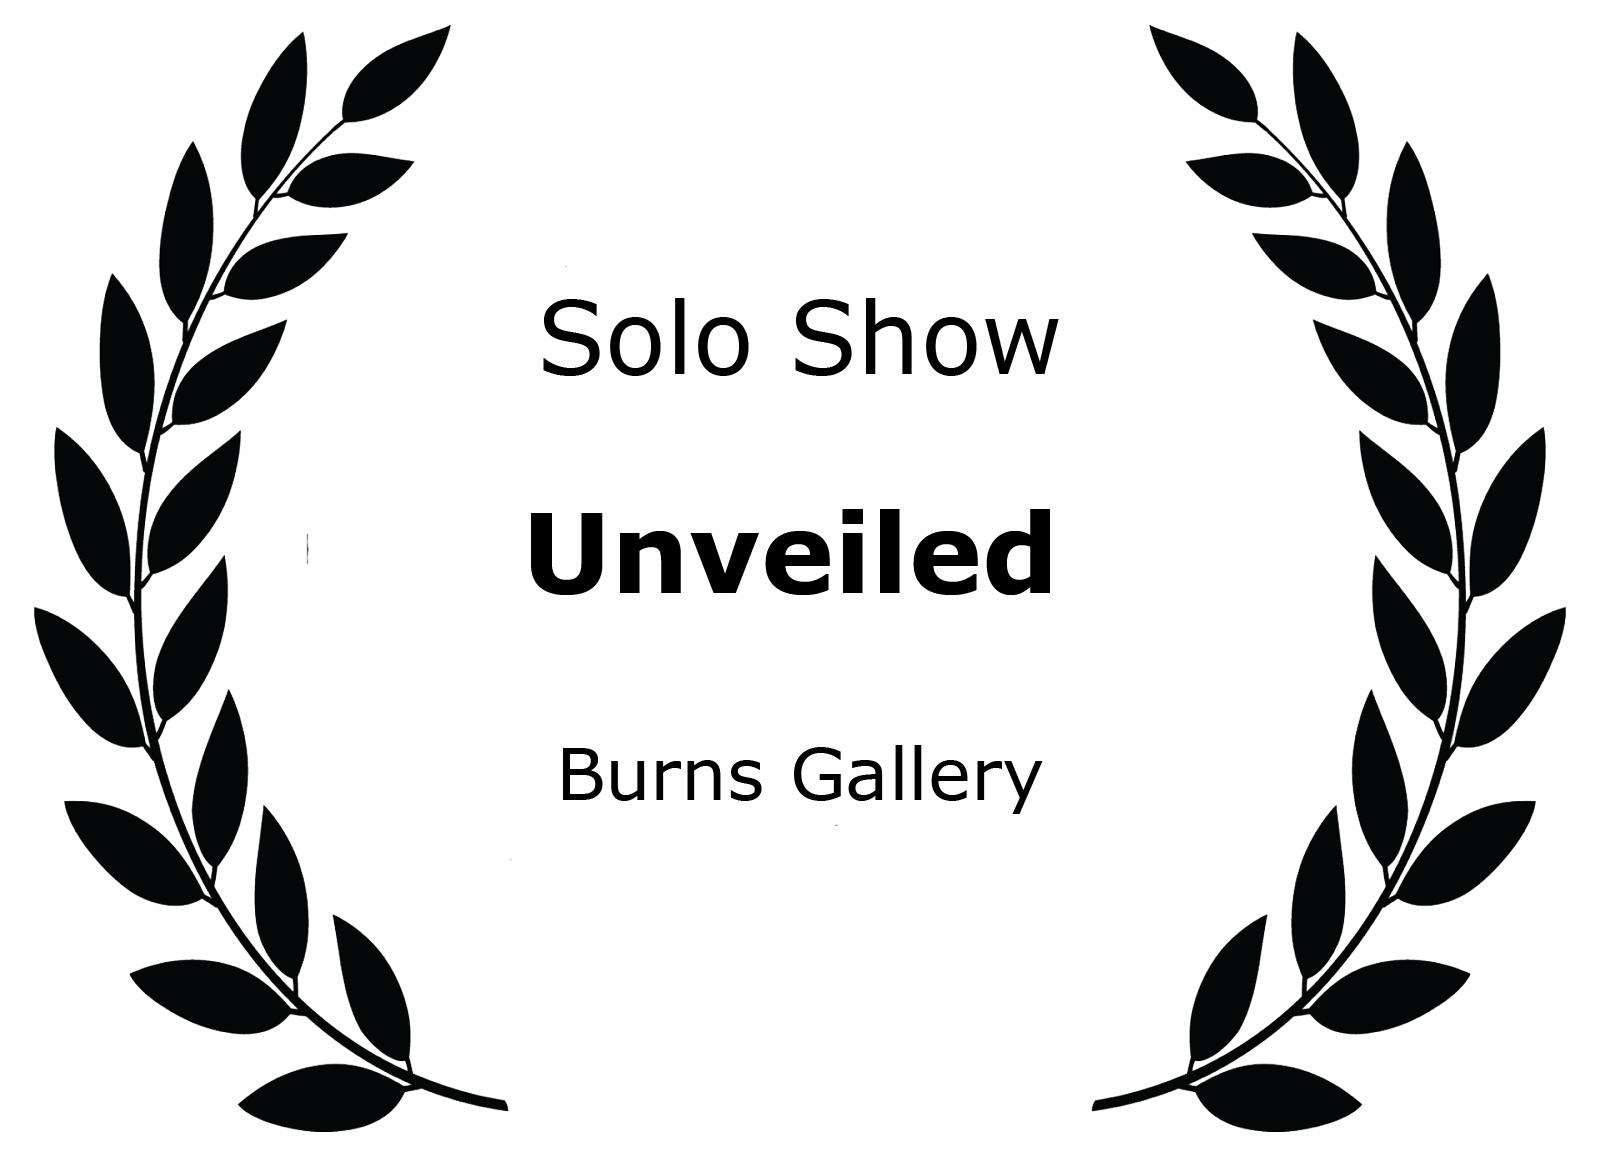 Solo Show Unveiled Burns Gallery